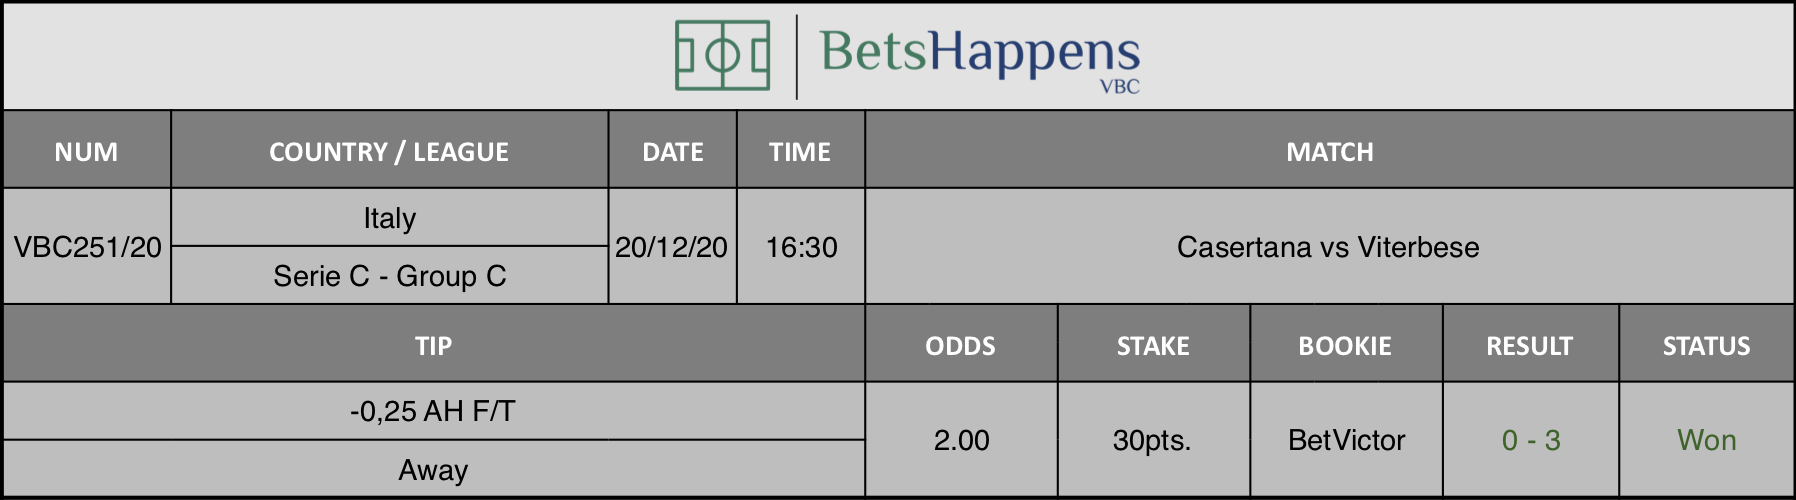 Results of our tip for the Casertana vs Viterbese match where -0,25 AH F/T Away is recommended.